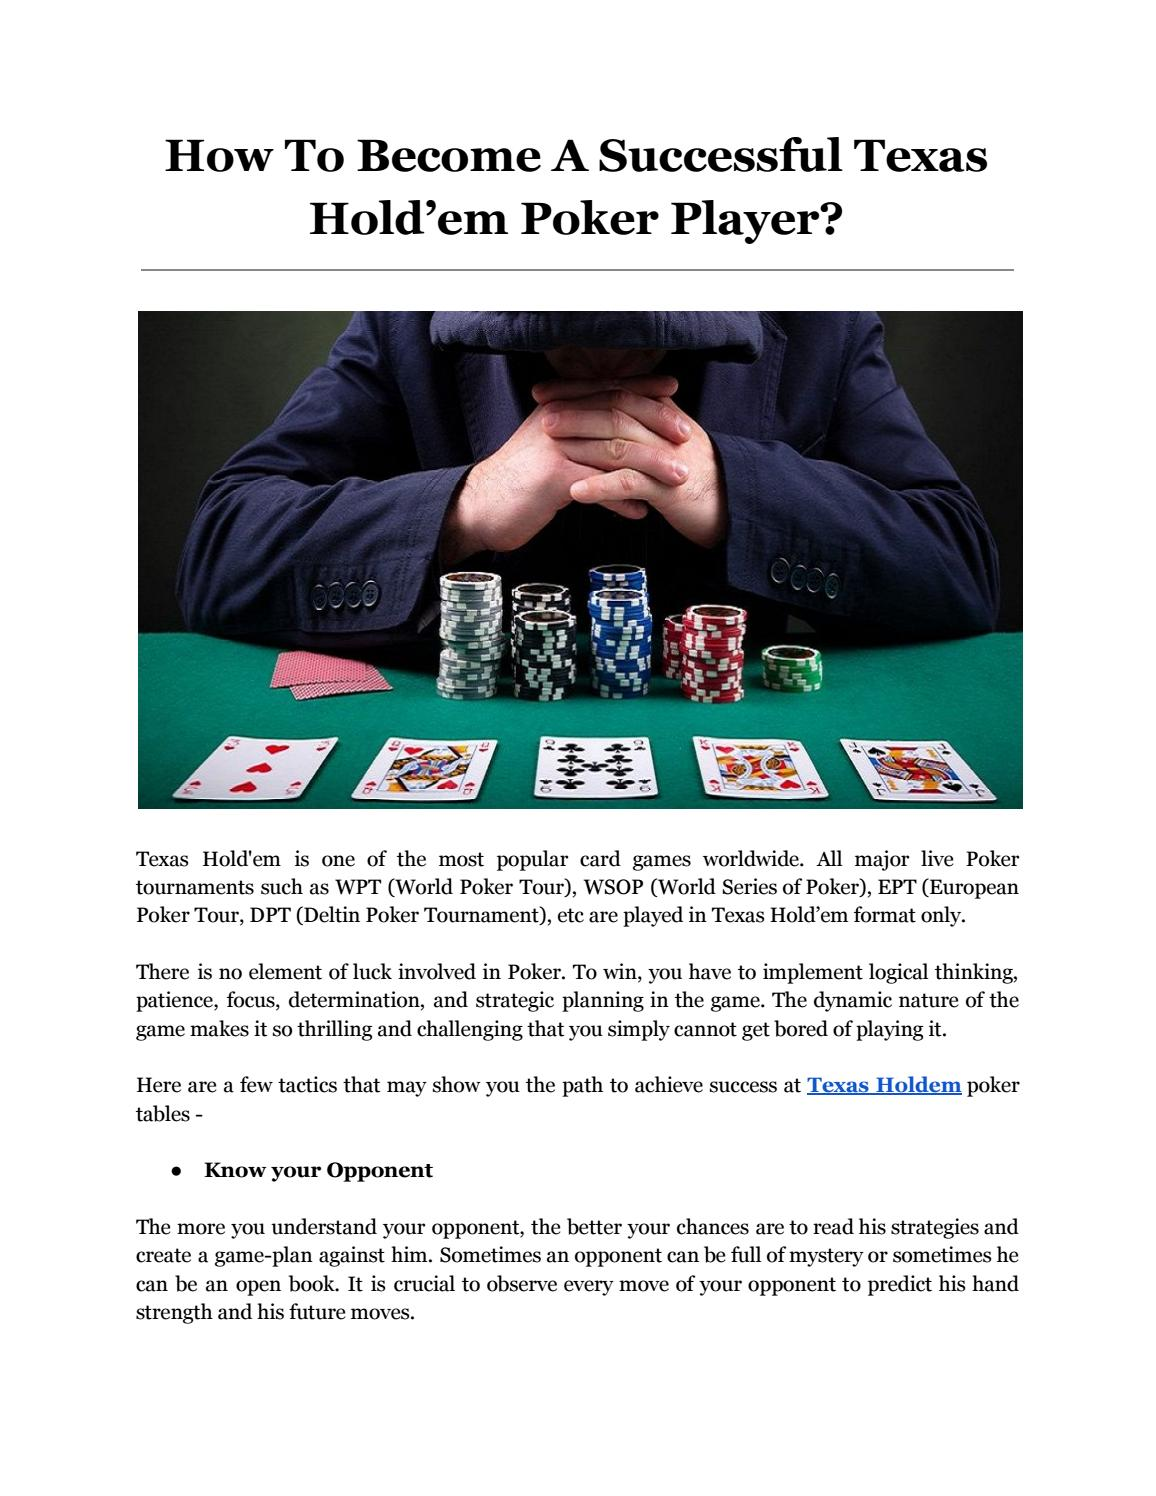 Holdem bluffing techniques